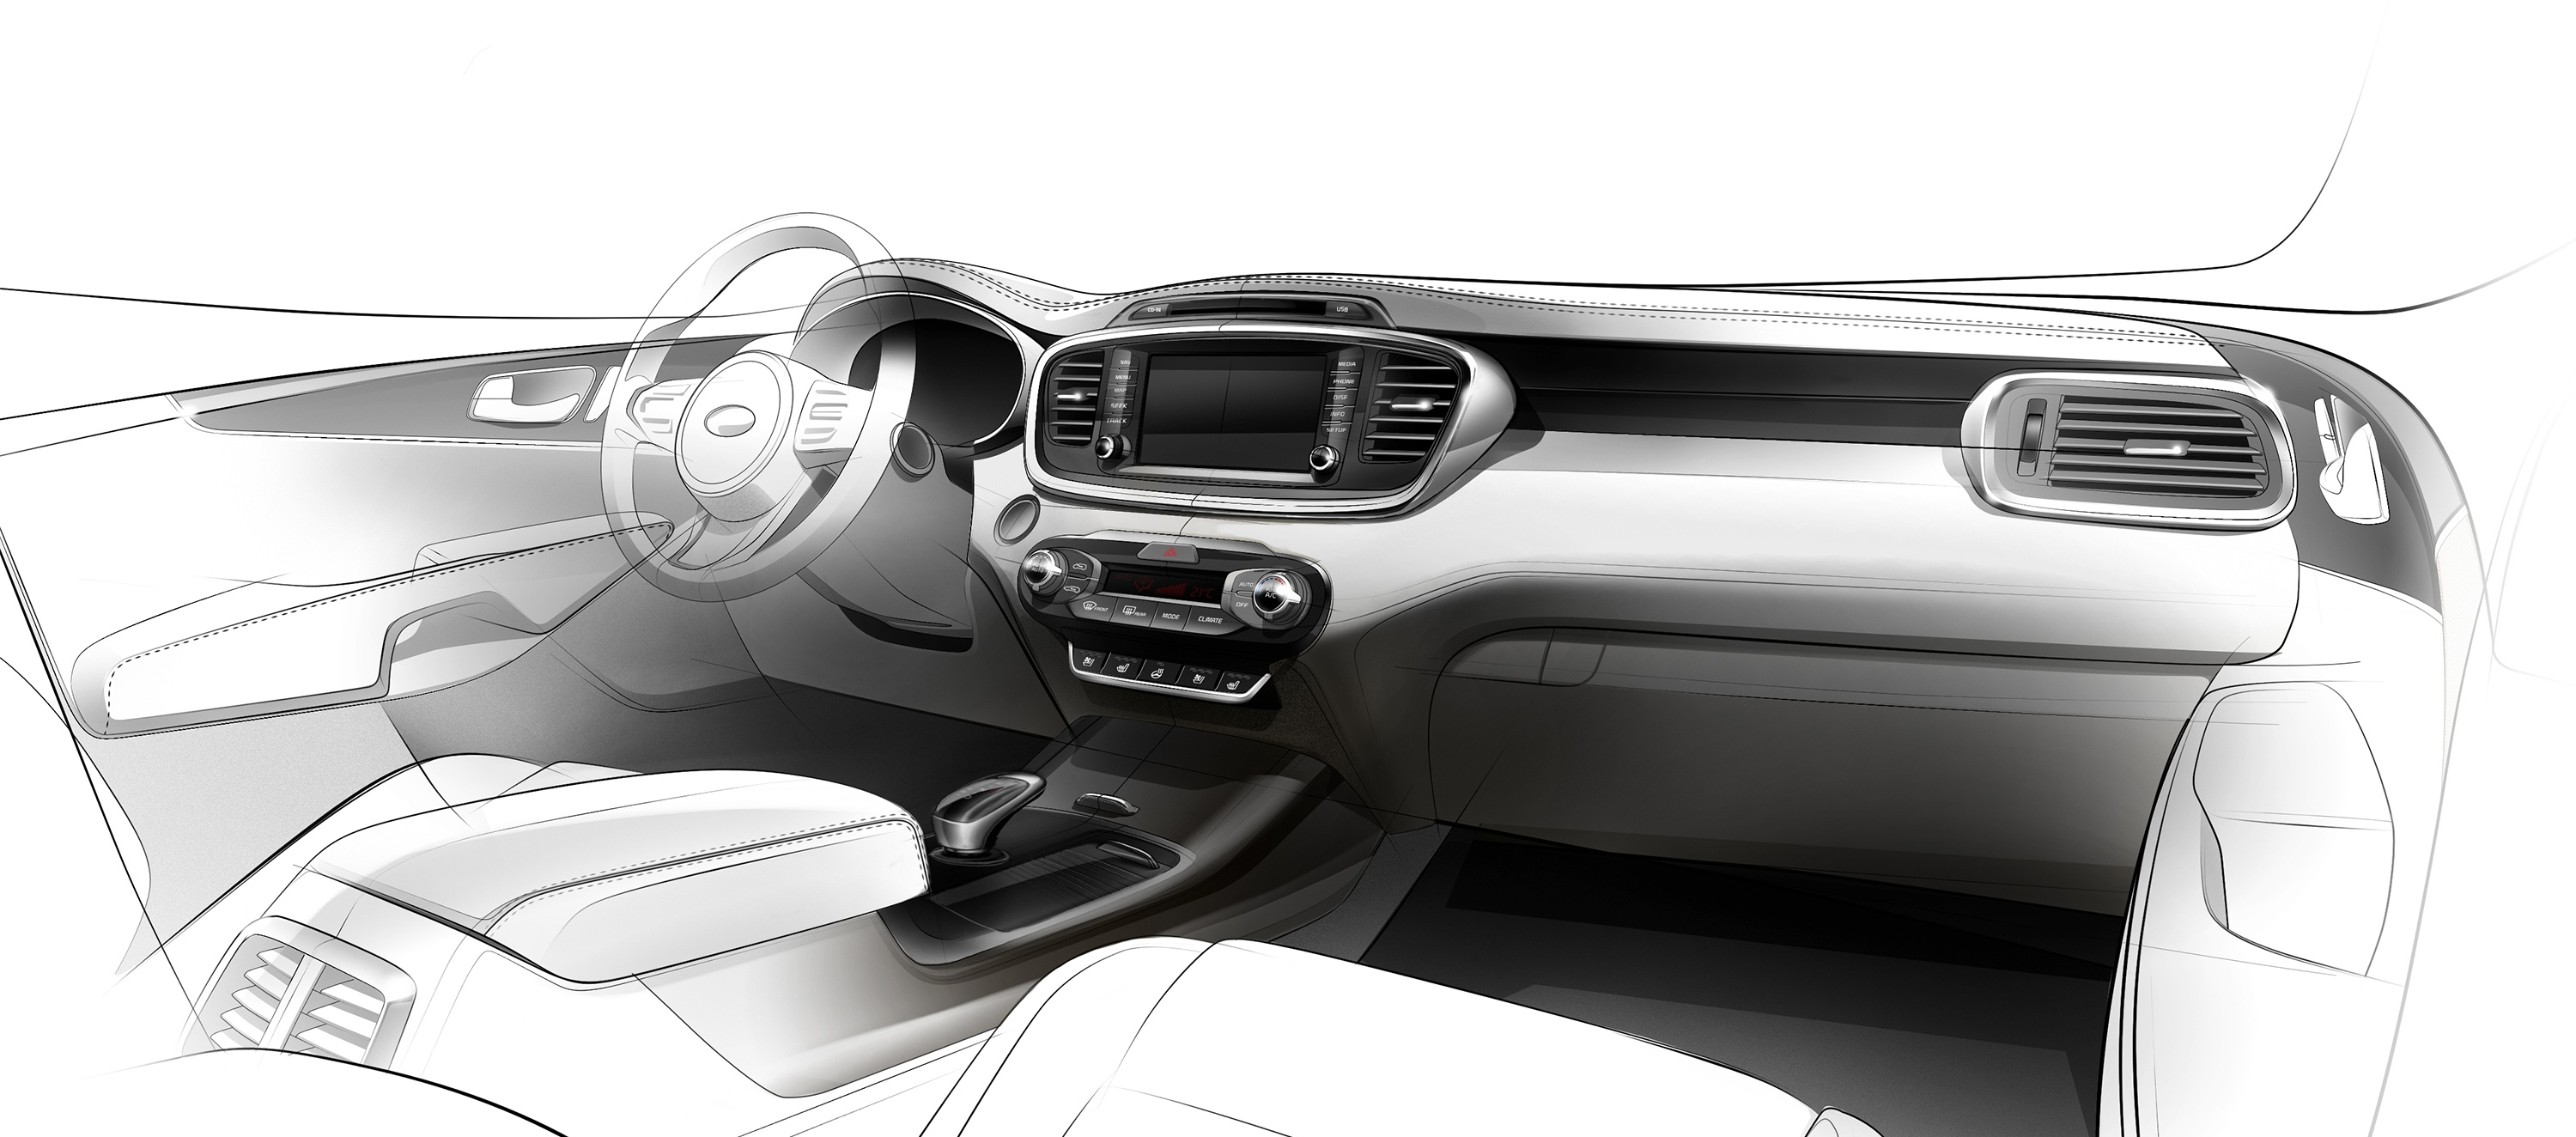 New Kia Sorento Interior Design Revealed In First Teaser Sketch